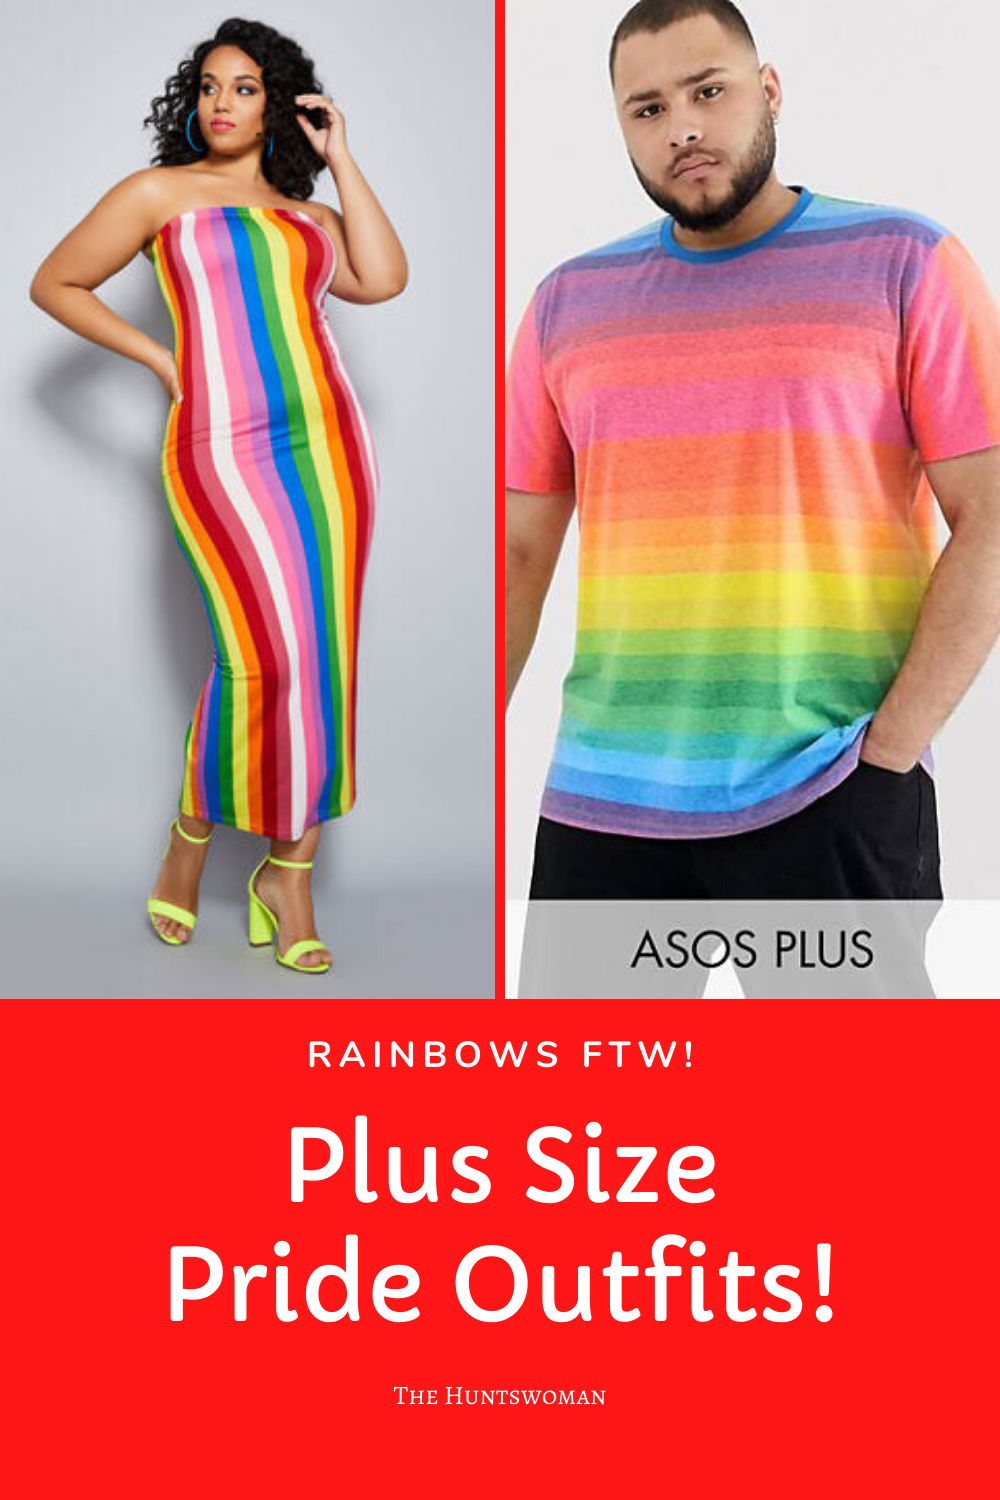 Where to buy plus size pride outfits